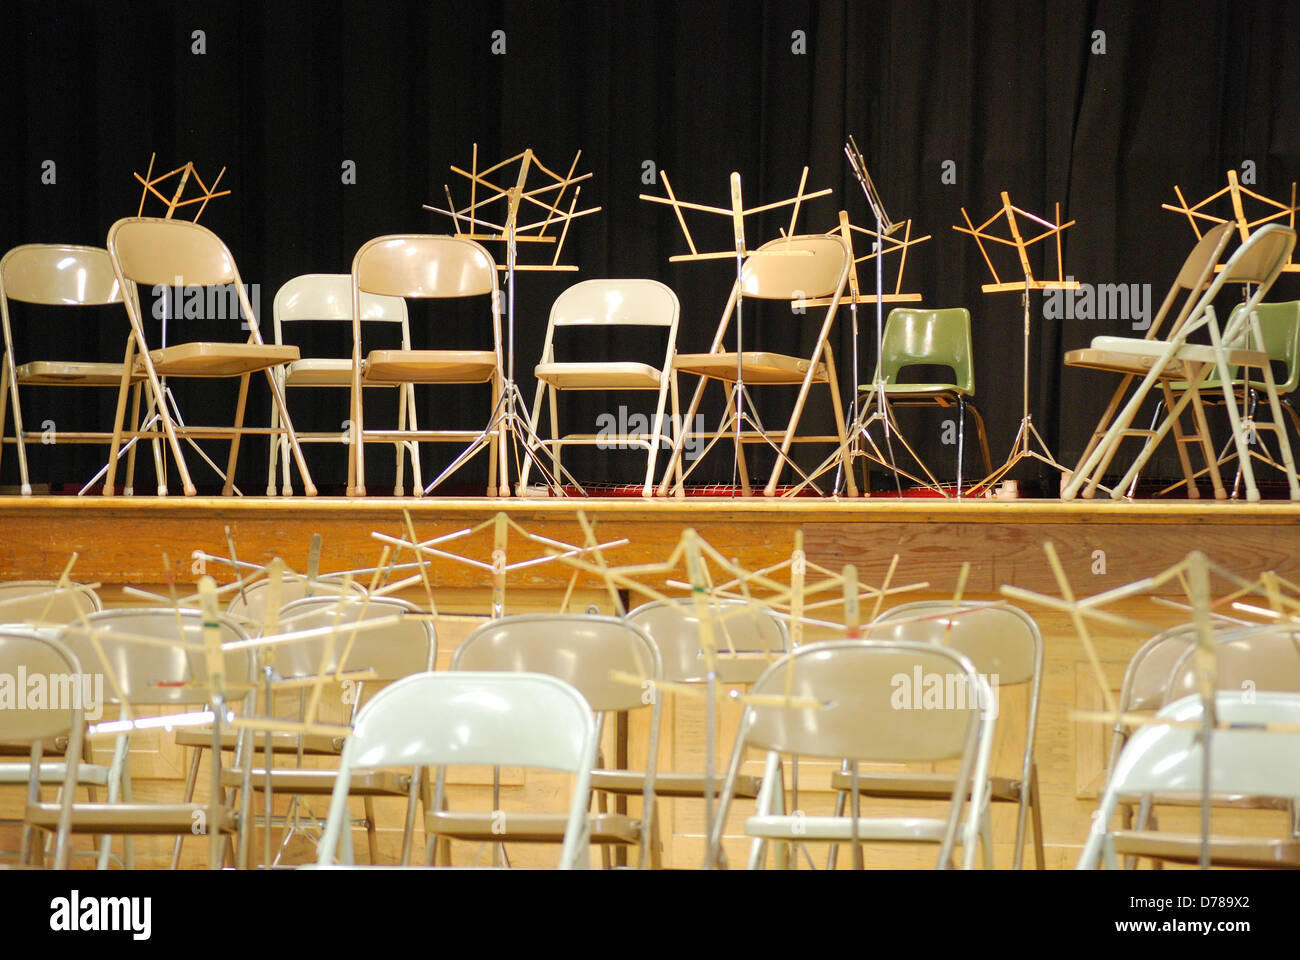 Music Stands And Chairs Setup.   Stock Image